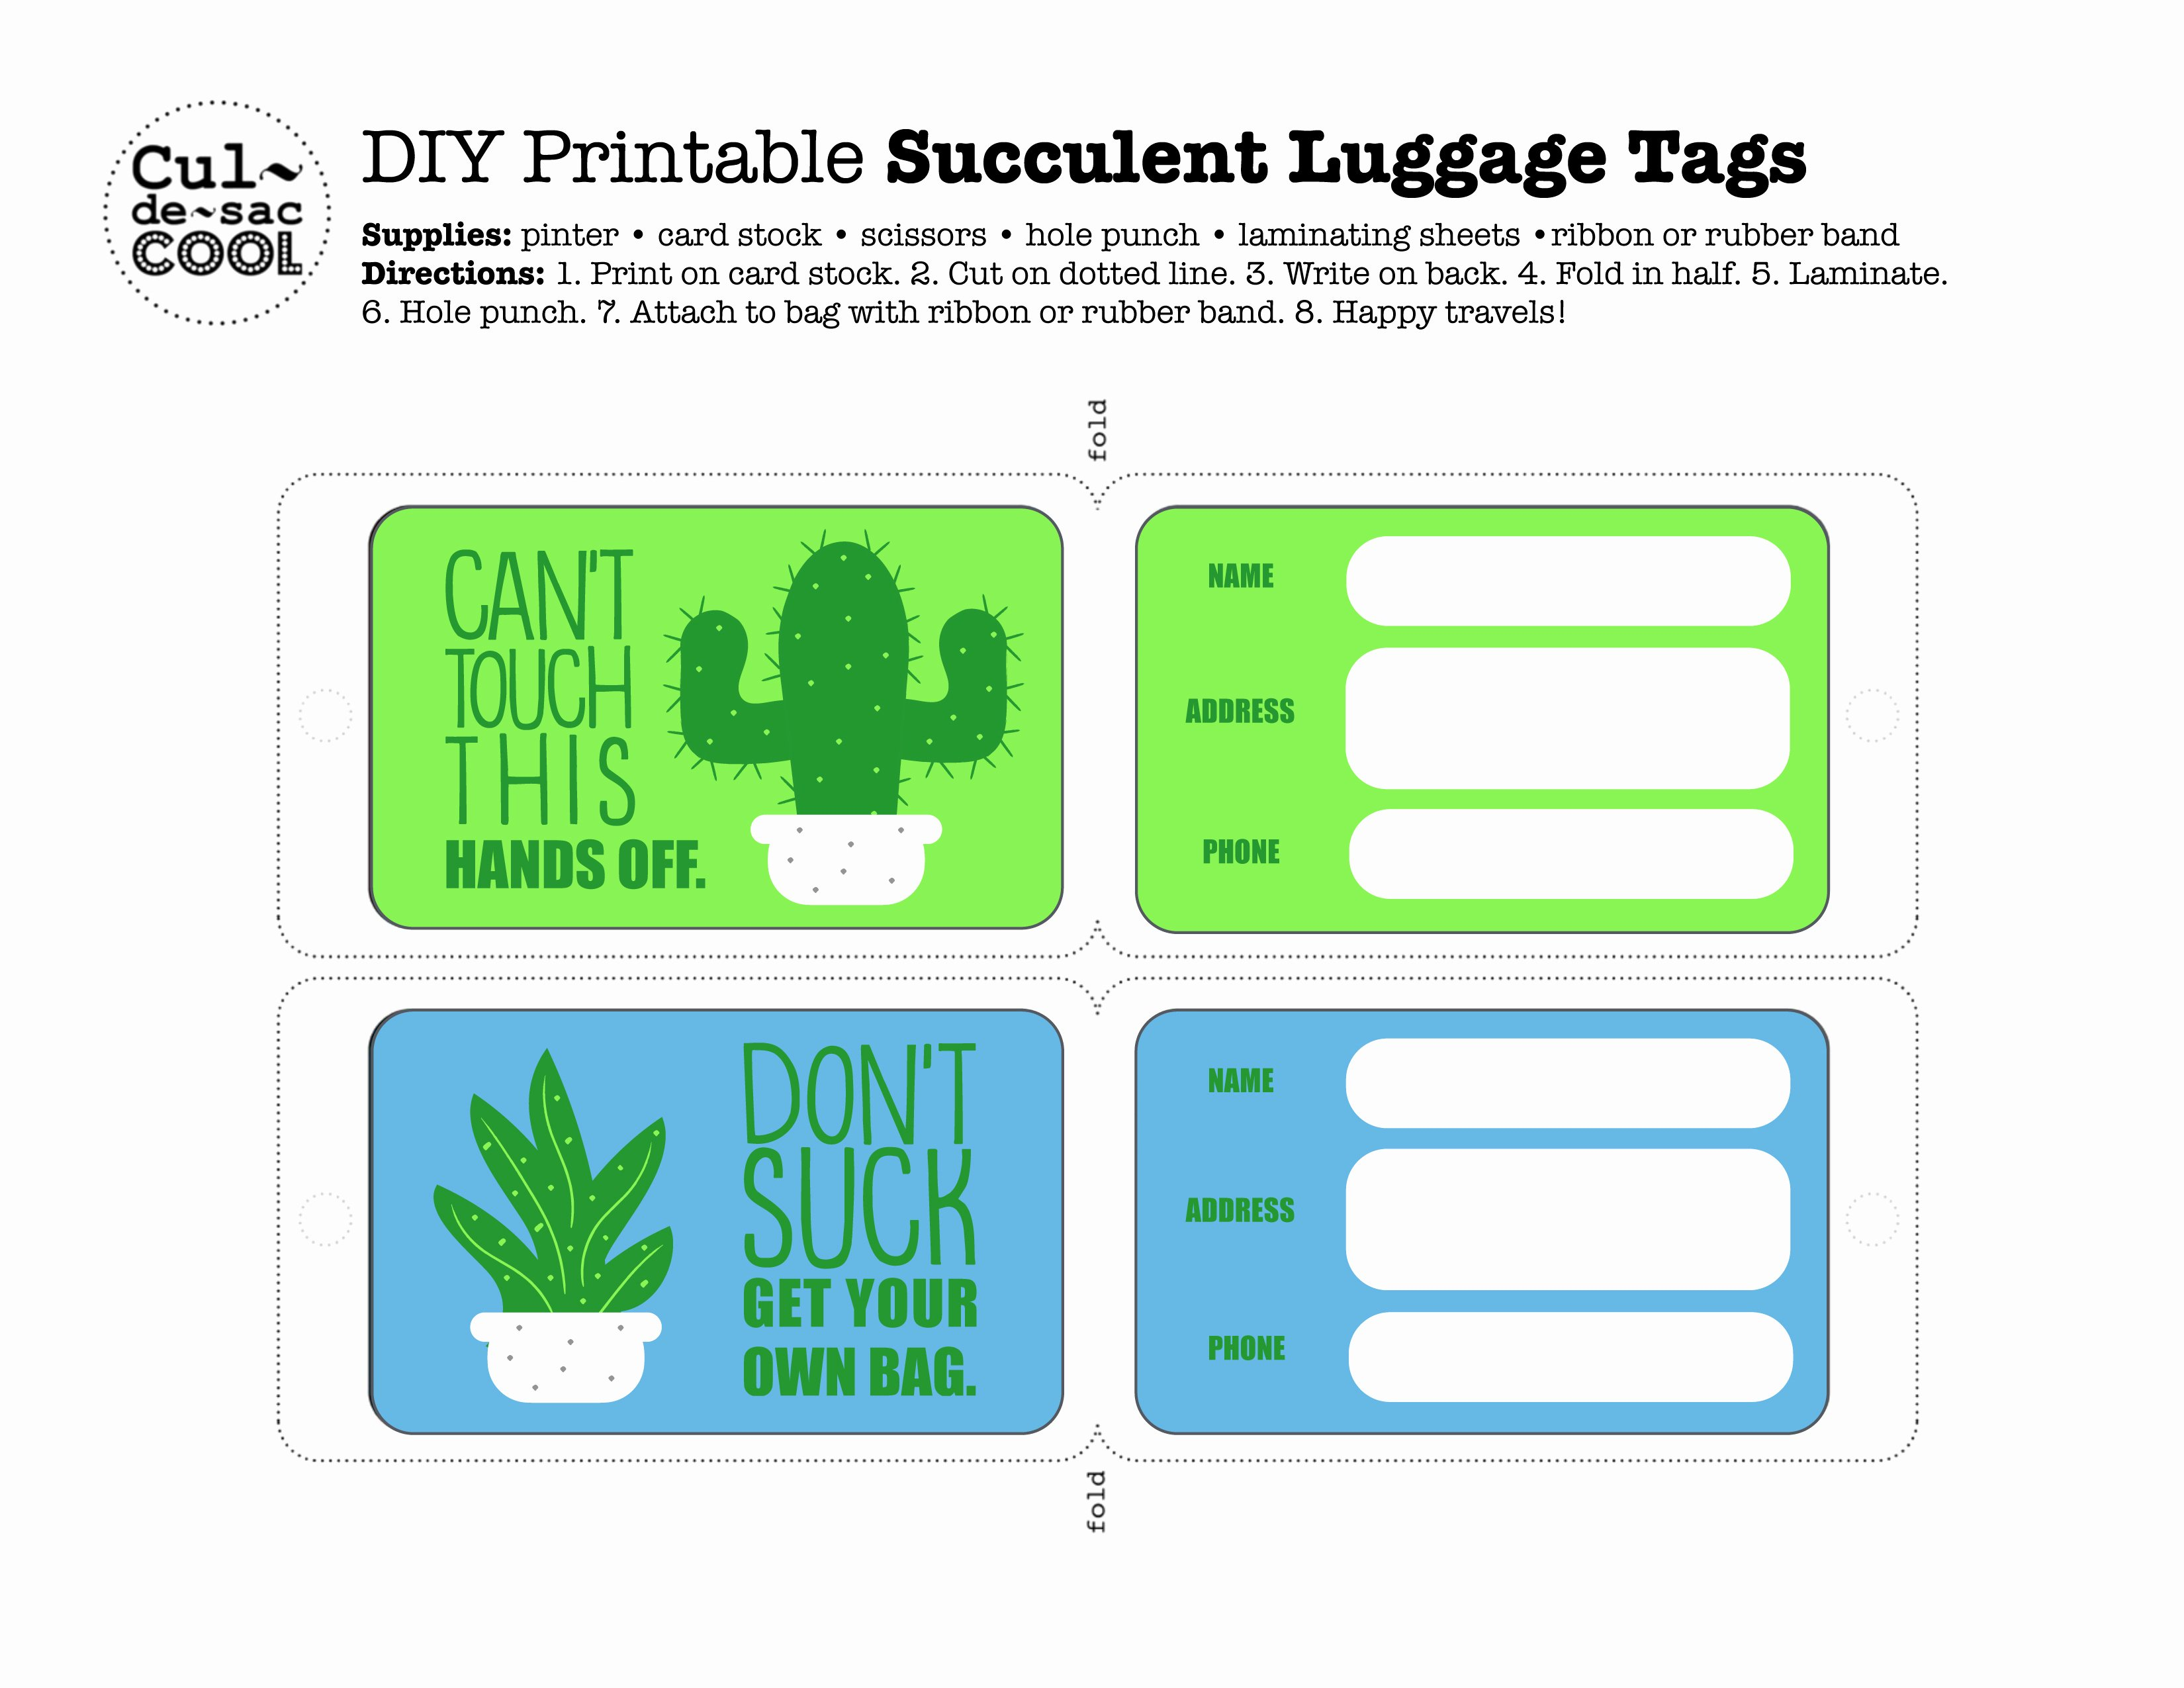 Diy Luggage Tags Template Luxury Diy Printable Succulent Luggage Tags